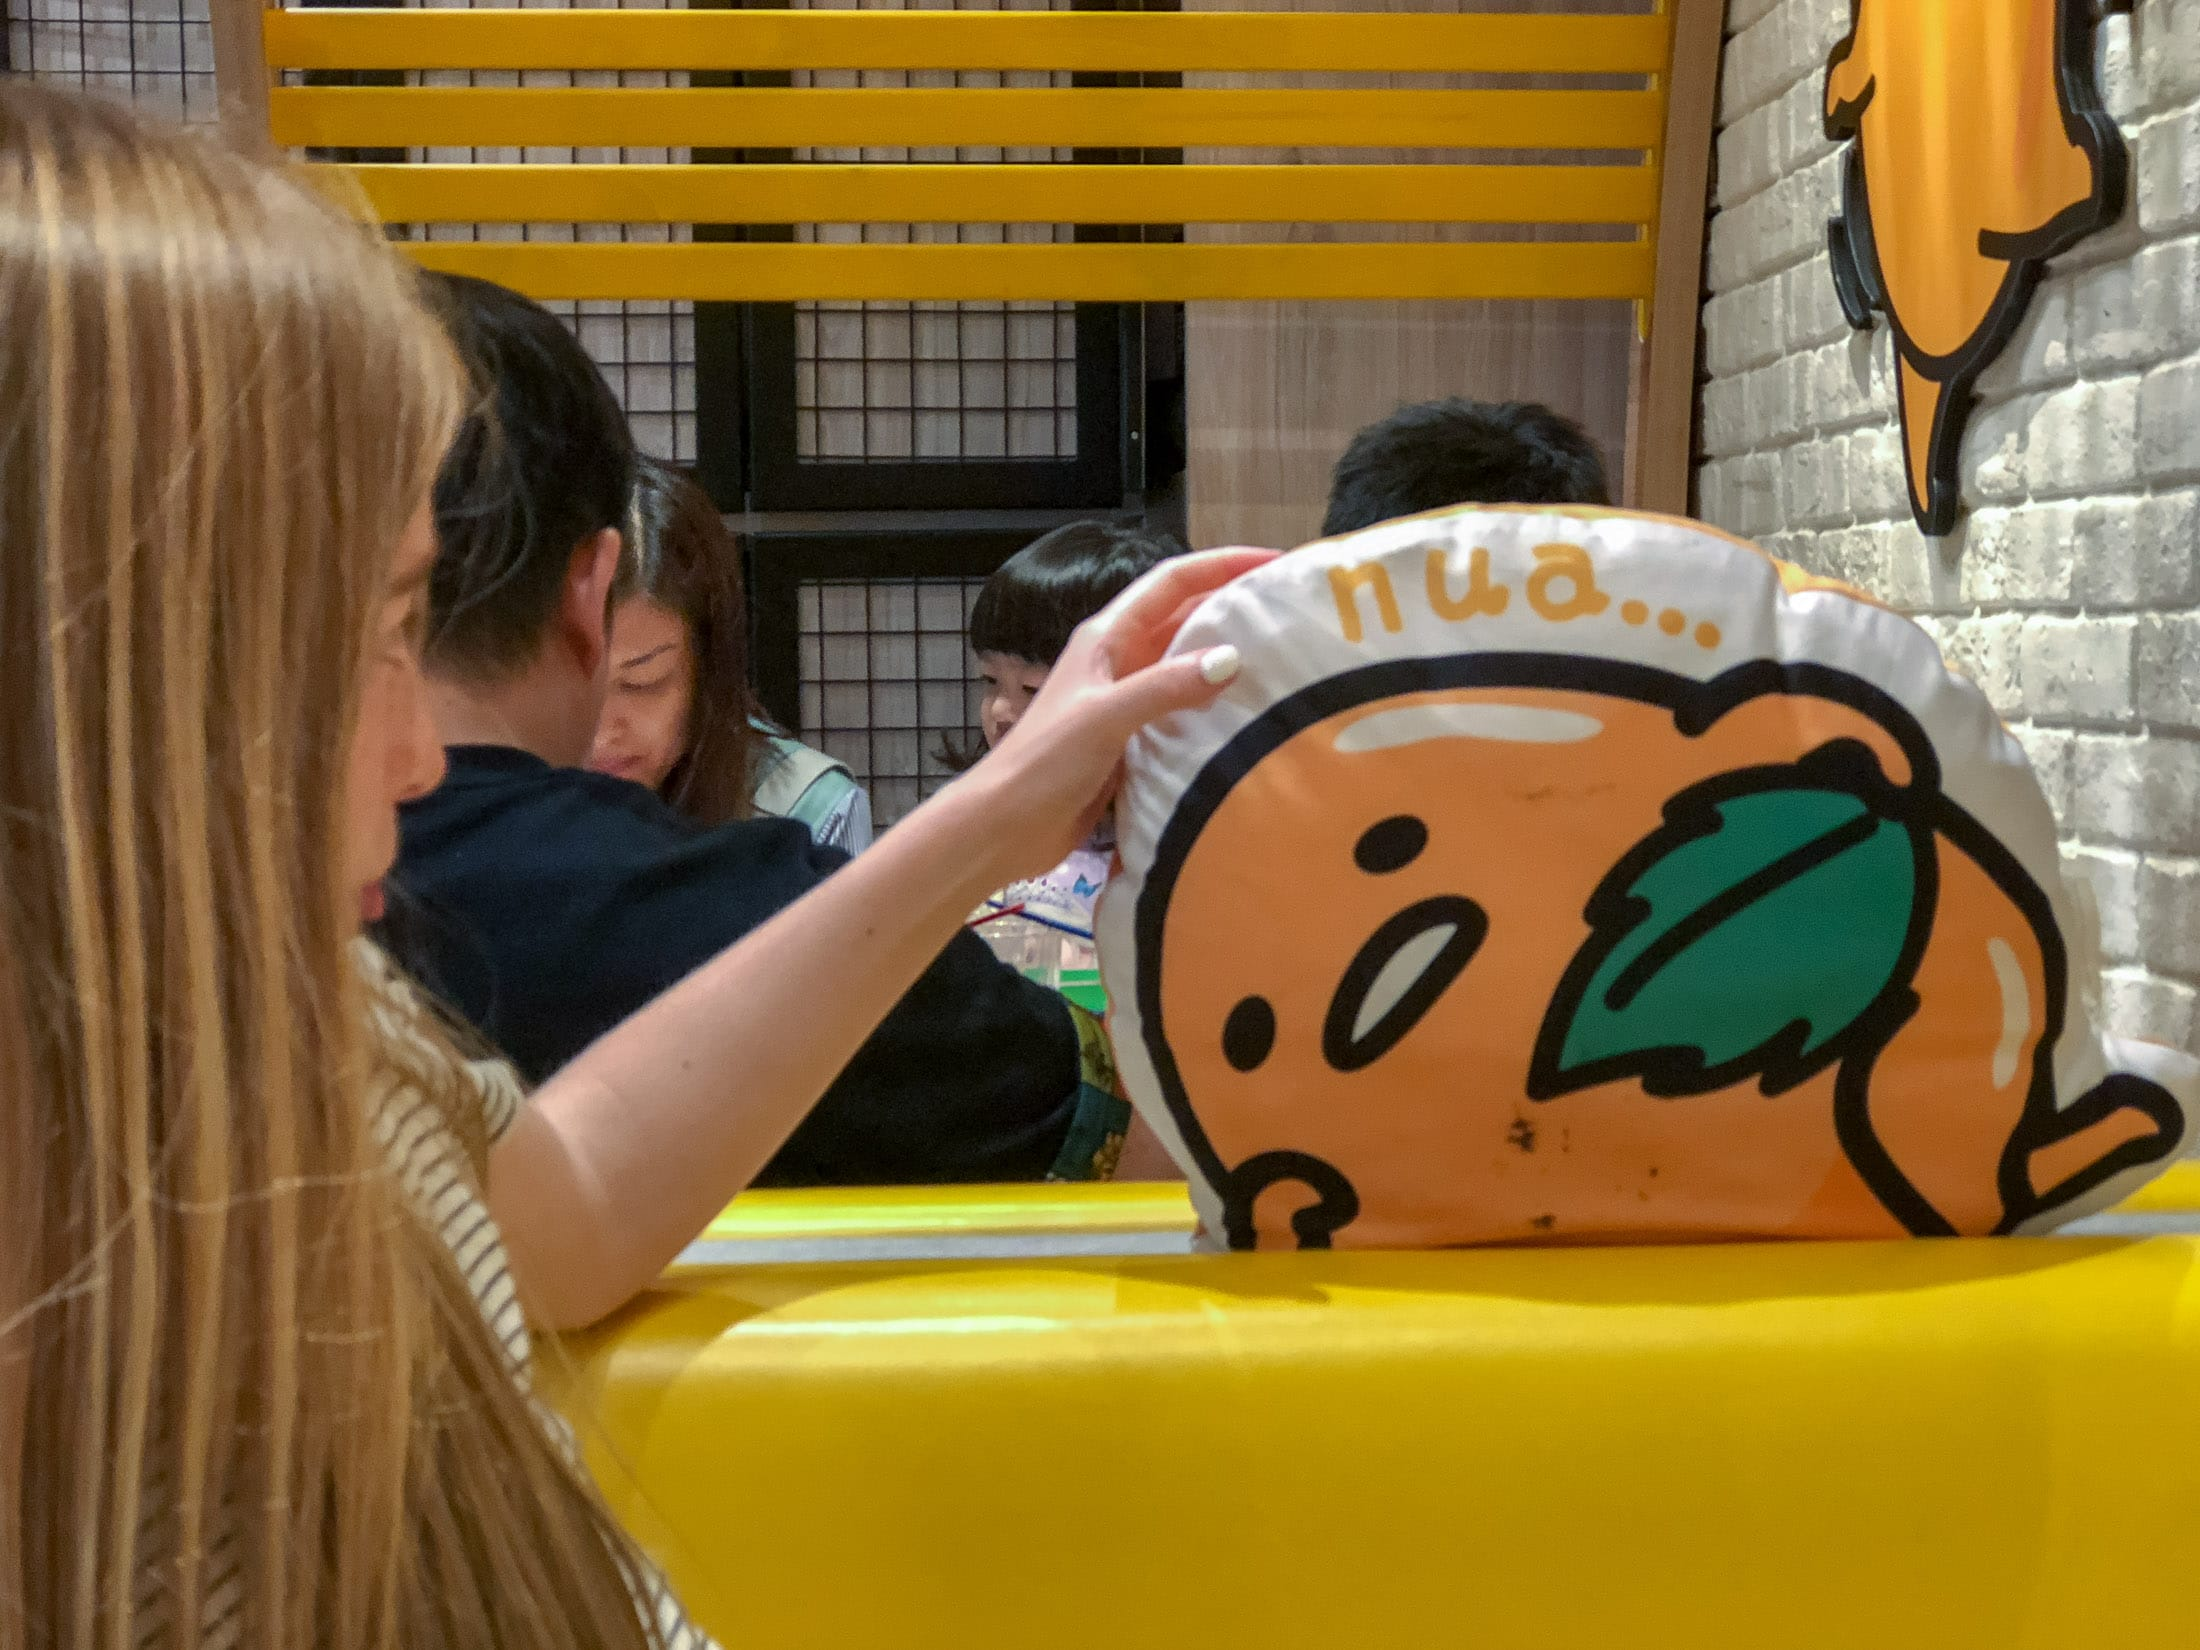 Pillow at Gudetama Cafe Singapore